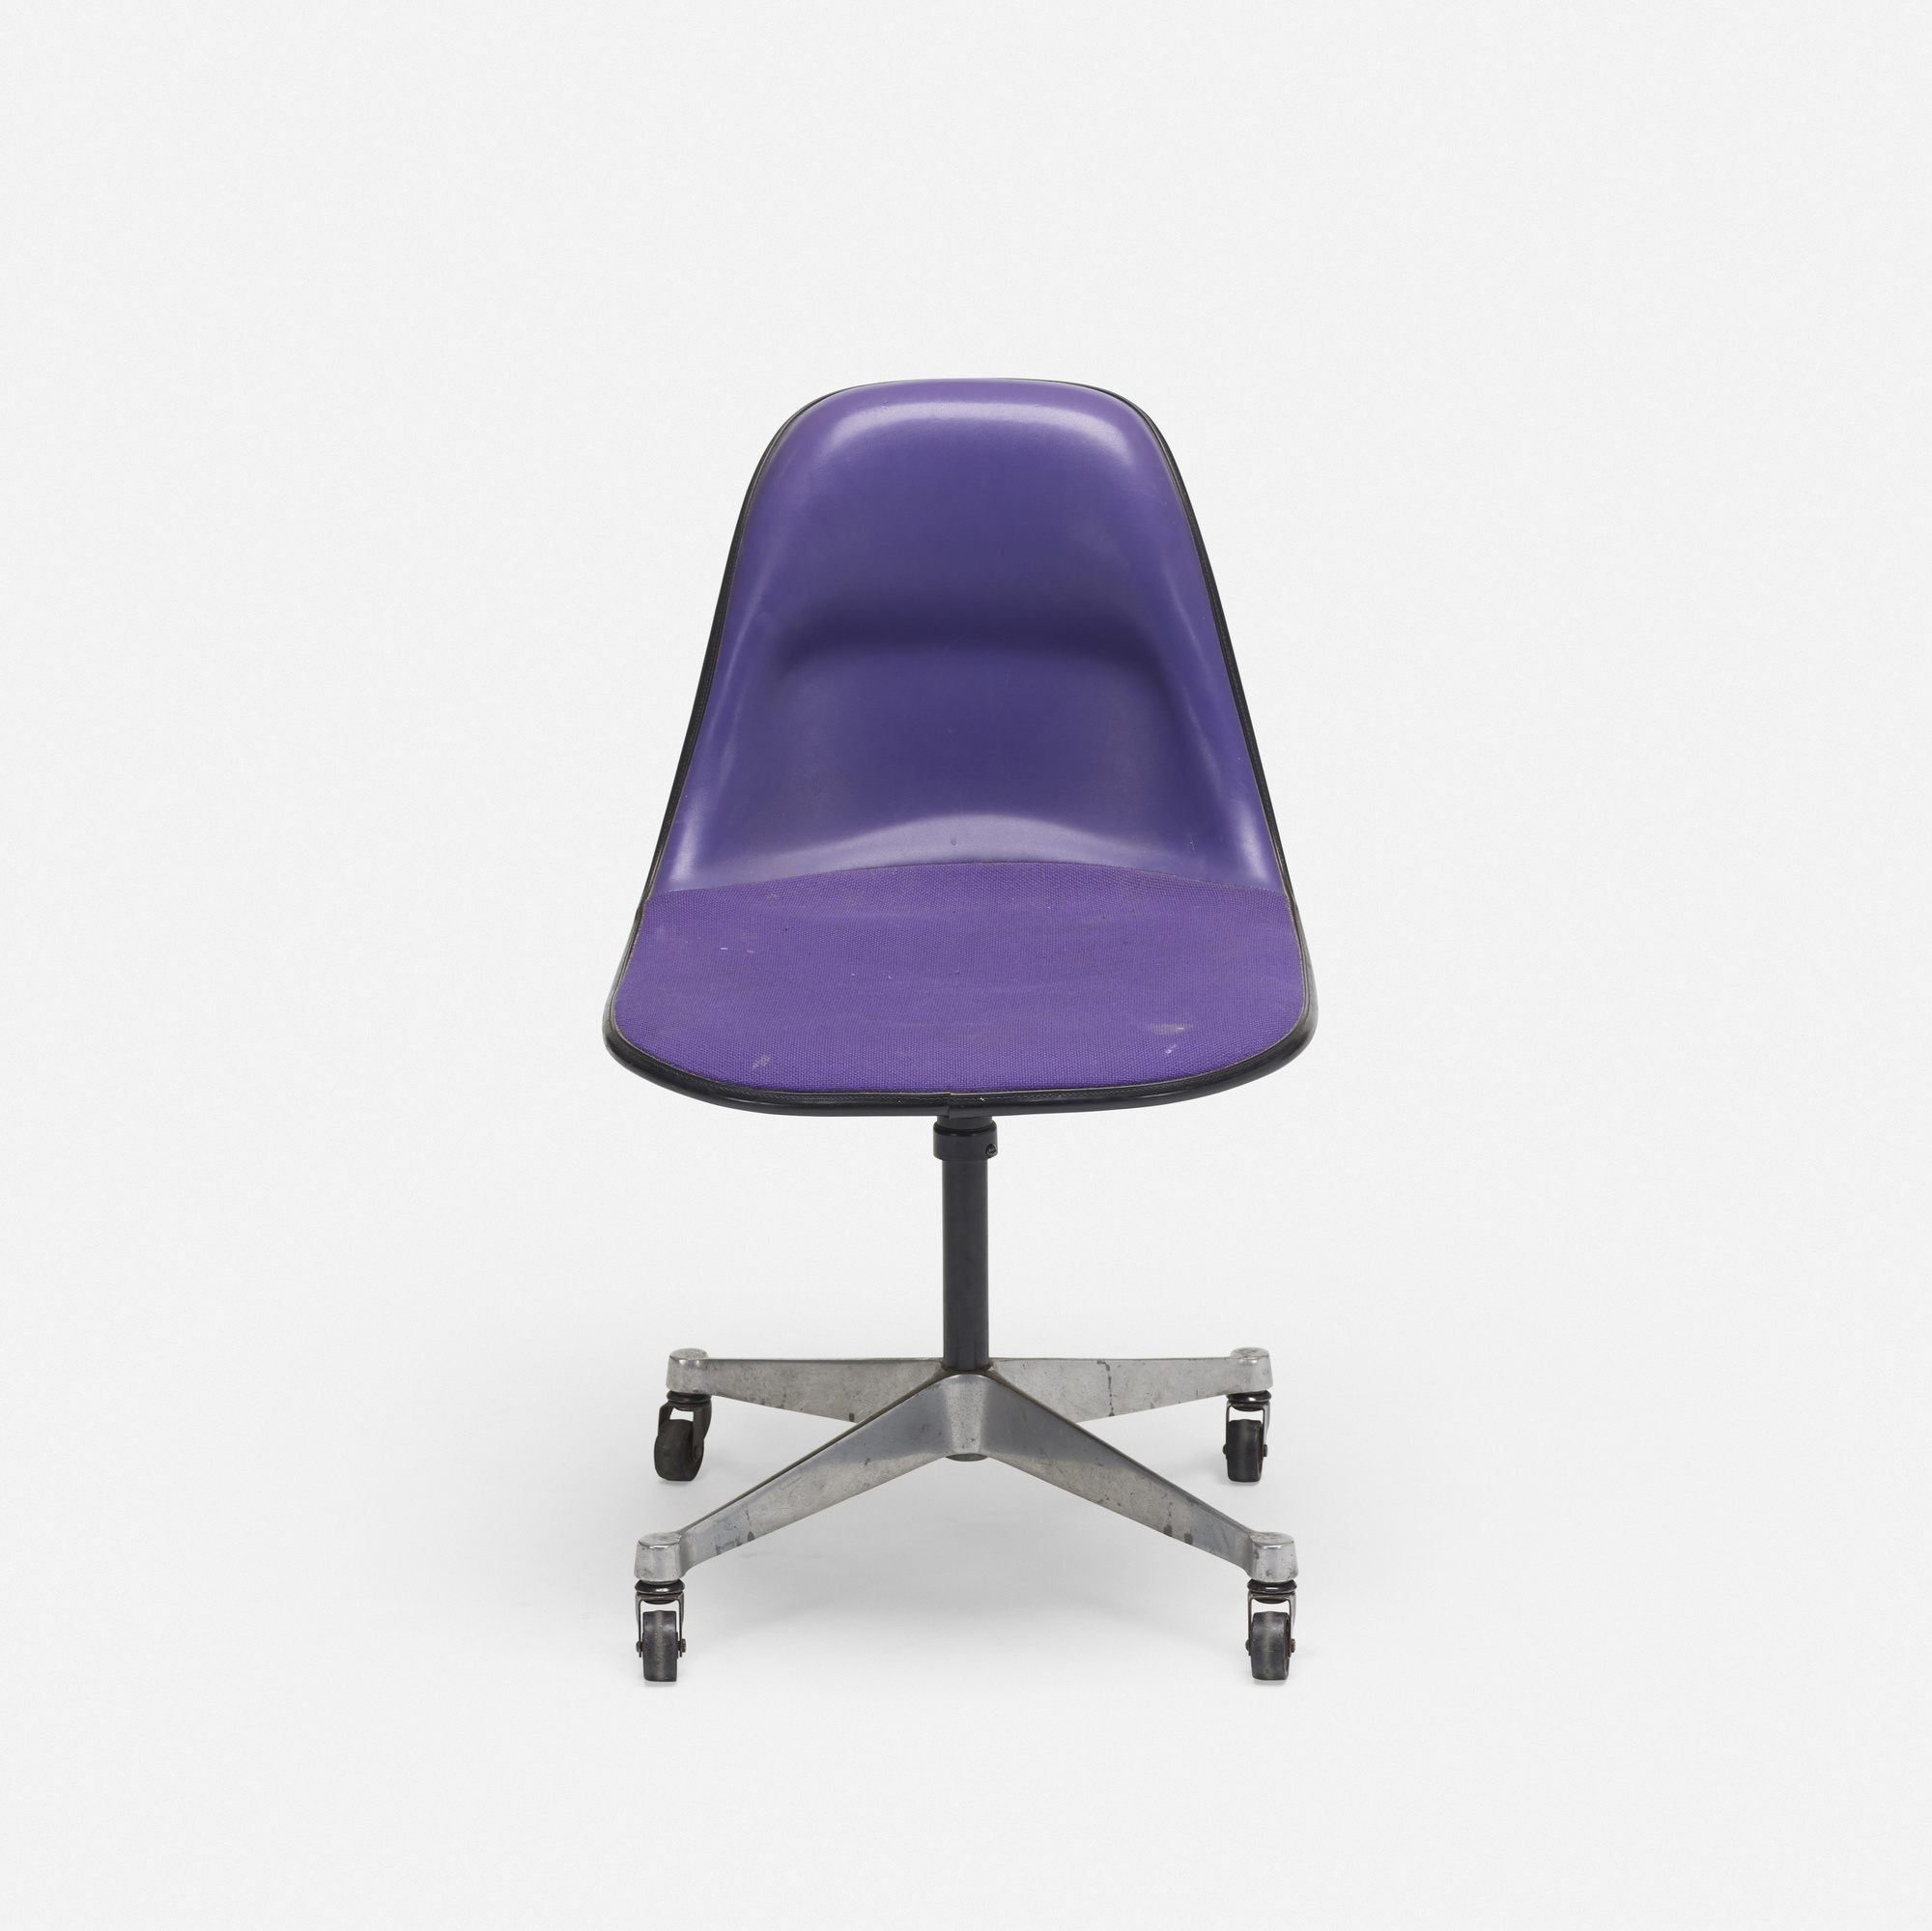 269: Charles and Ray Eames / PSCA-36 (2 of 3)